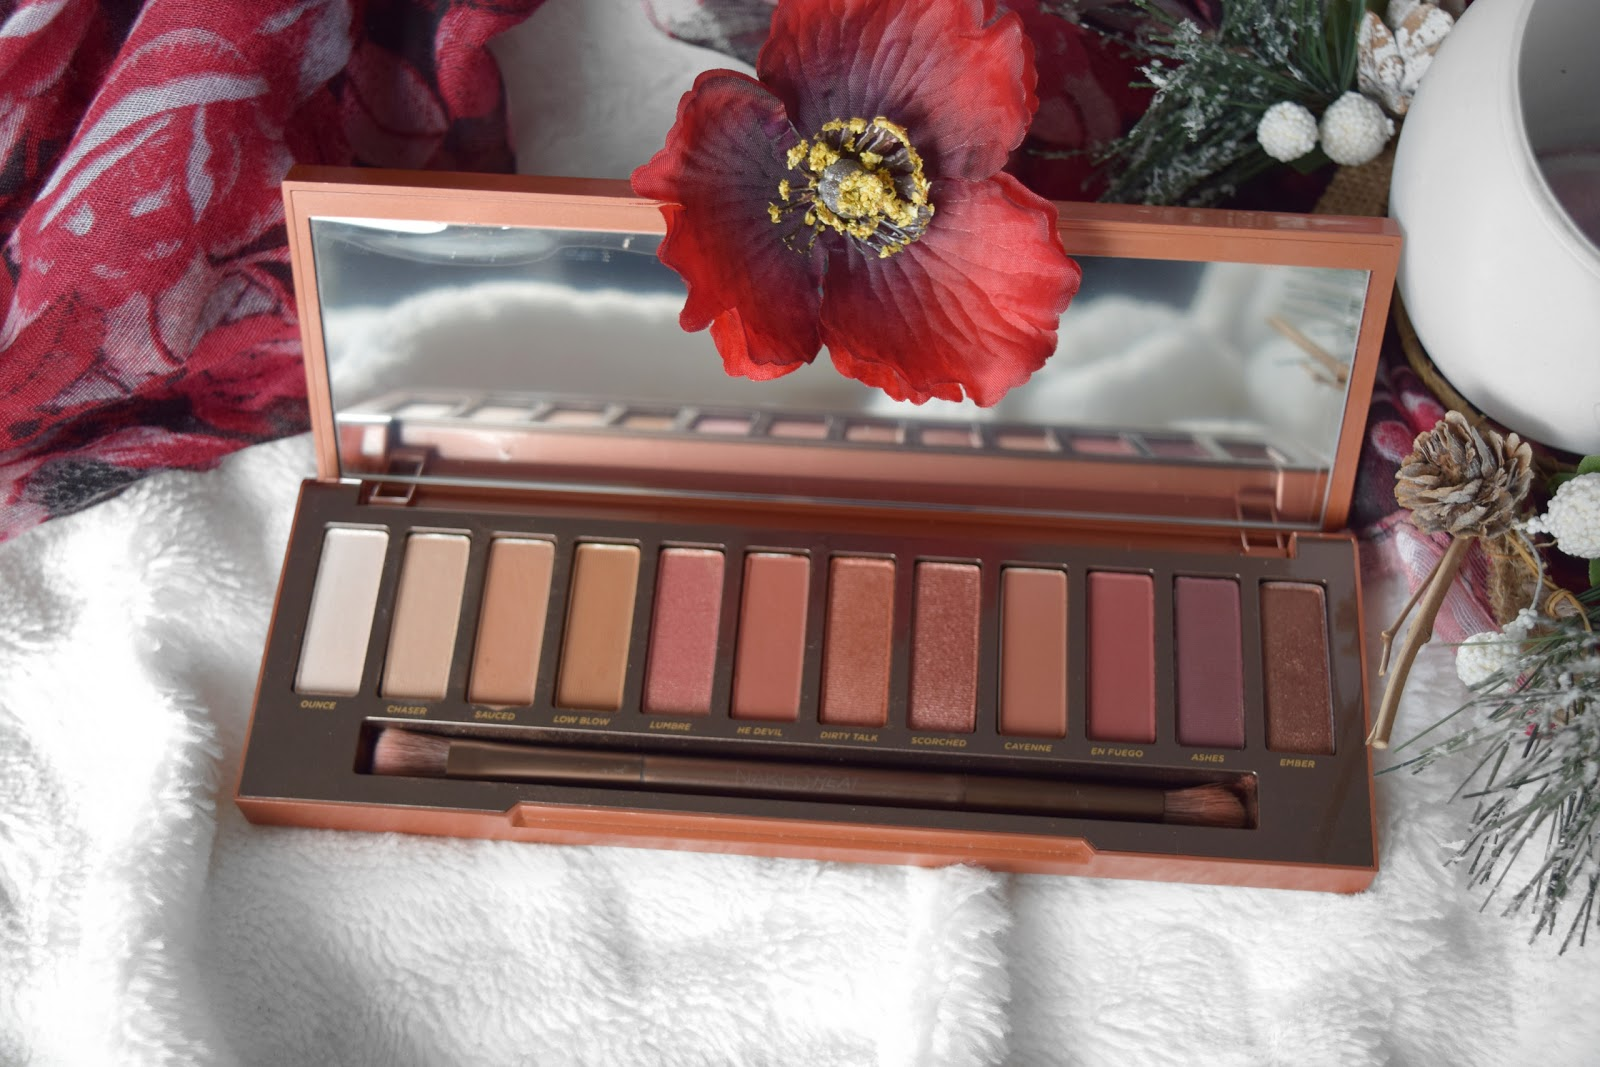 Urban Decay Naked Heat Eyeshadow Palette: Review and Swatches